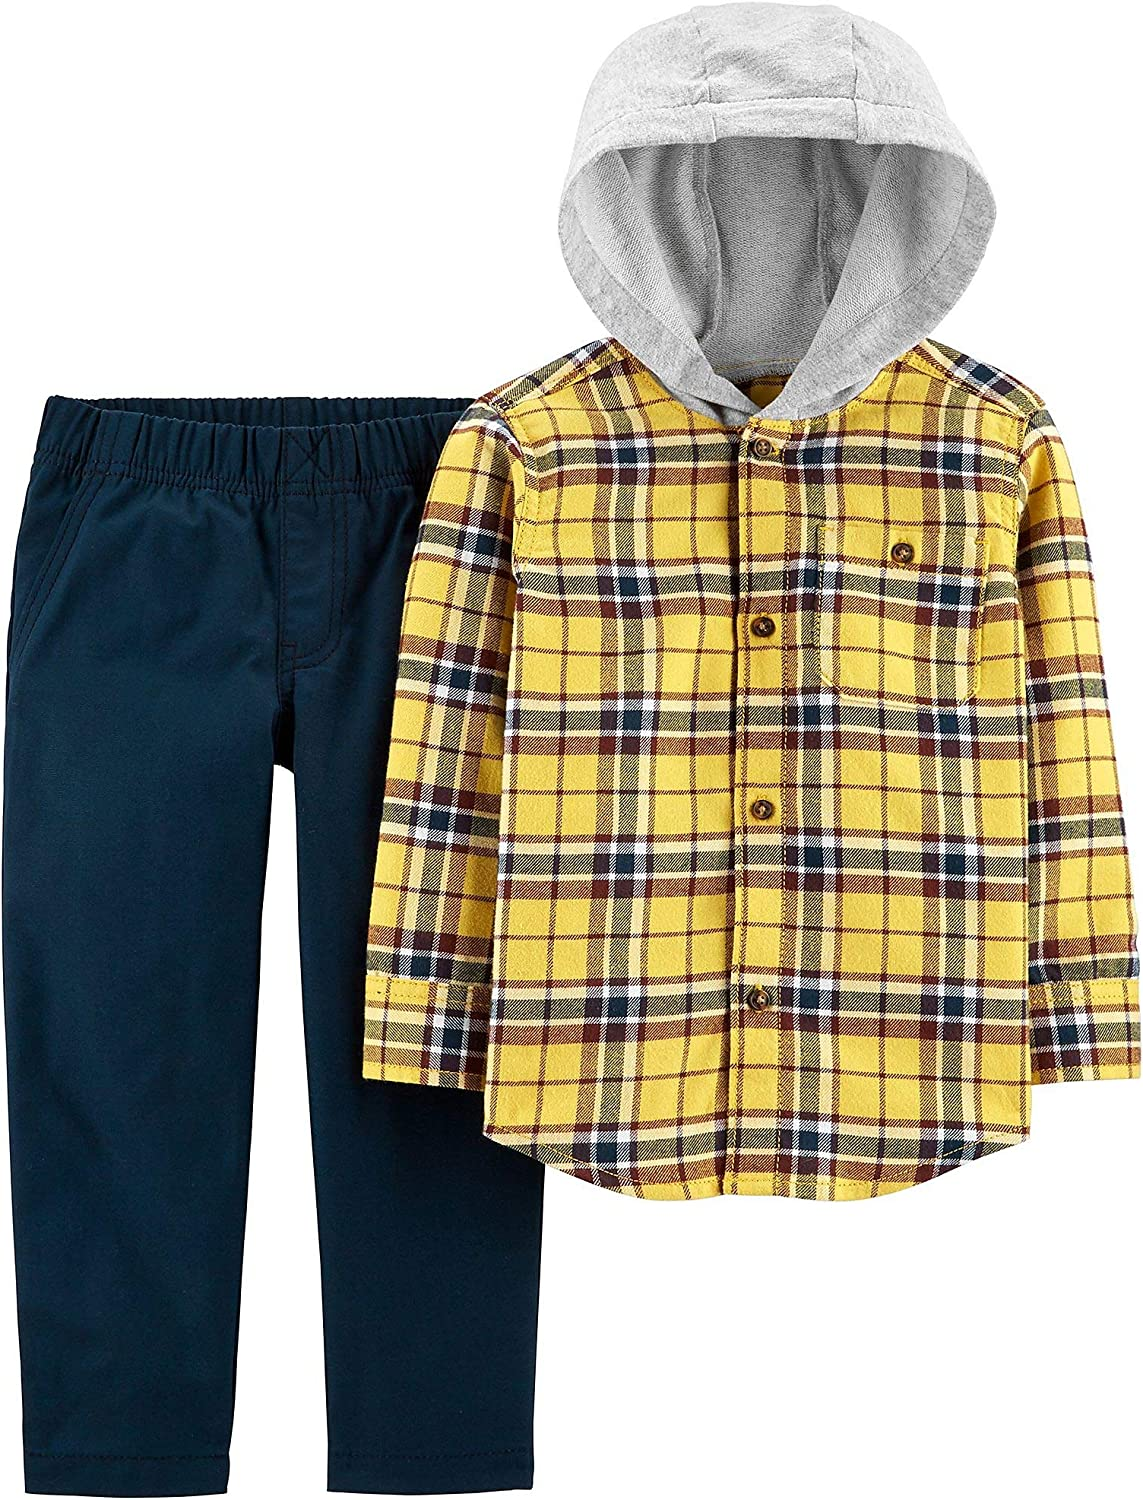 Carter's Baby Boys Plaid Button Down Hoodie Pants Set 24 Months Yellow/Blue